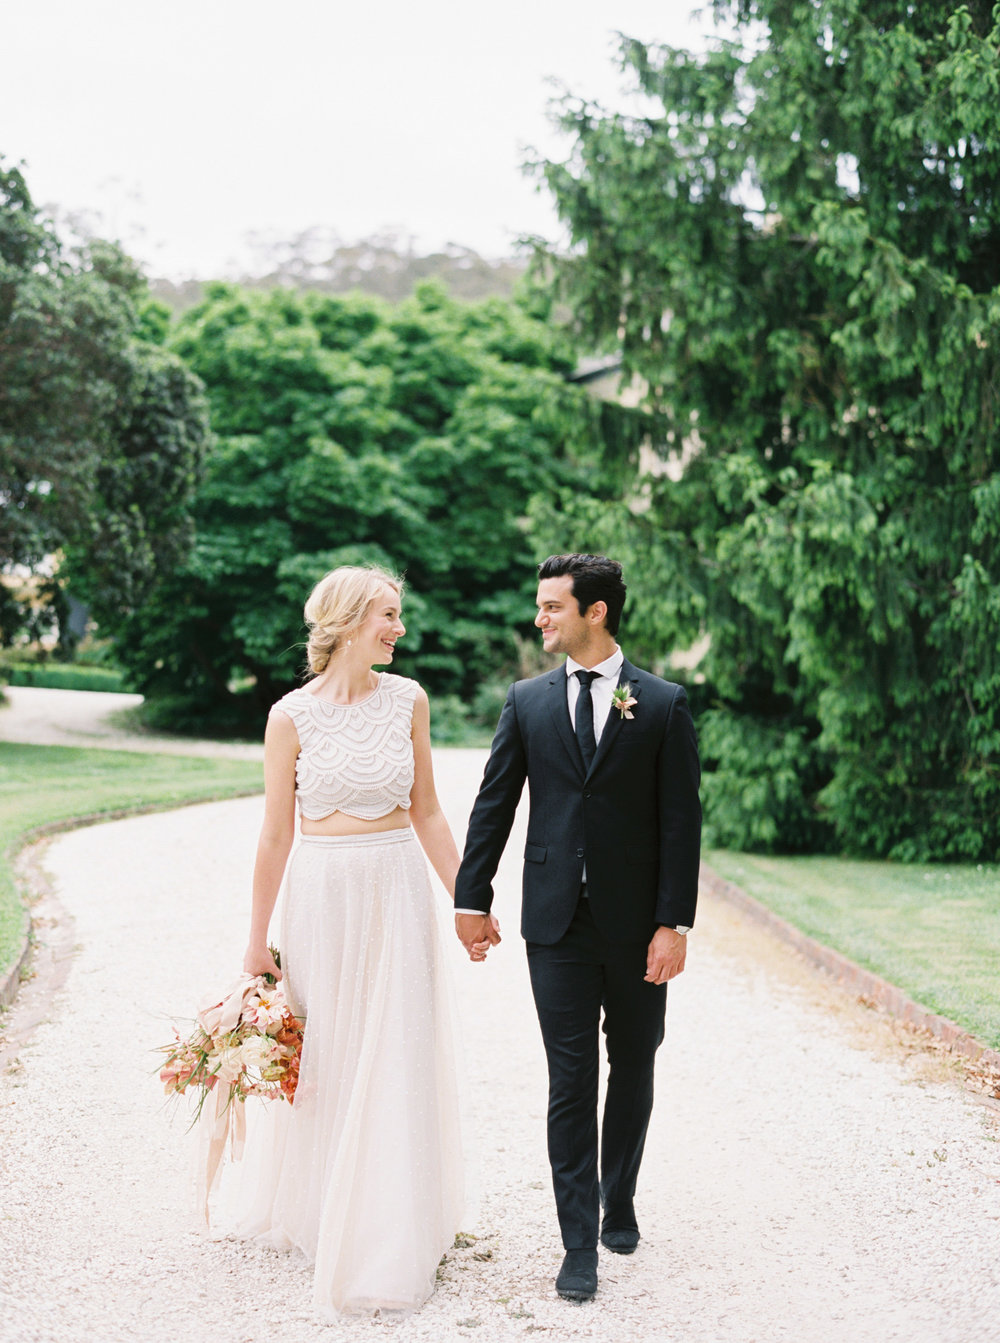 Timeless Southern Highland Wedding Elopement in Bowral NSW Fine Art Film Photographer Sheri McMahon-33.jpg